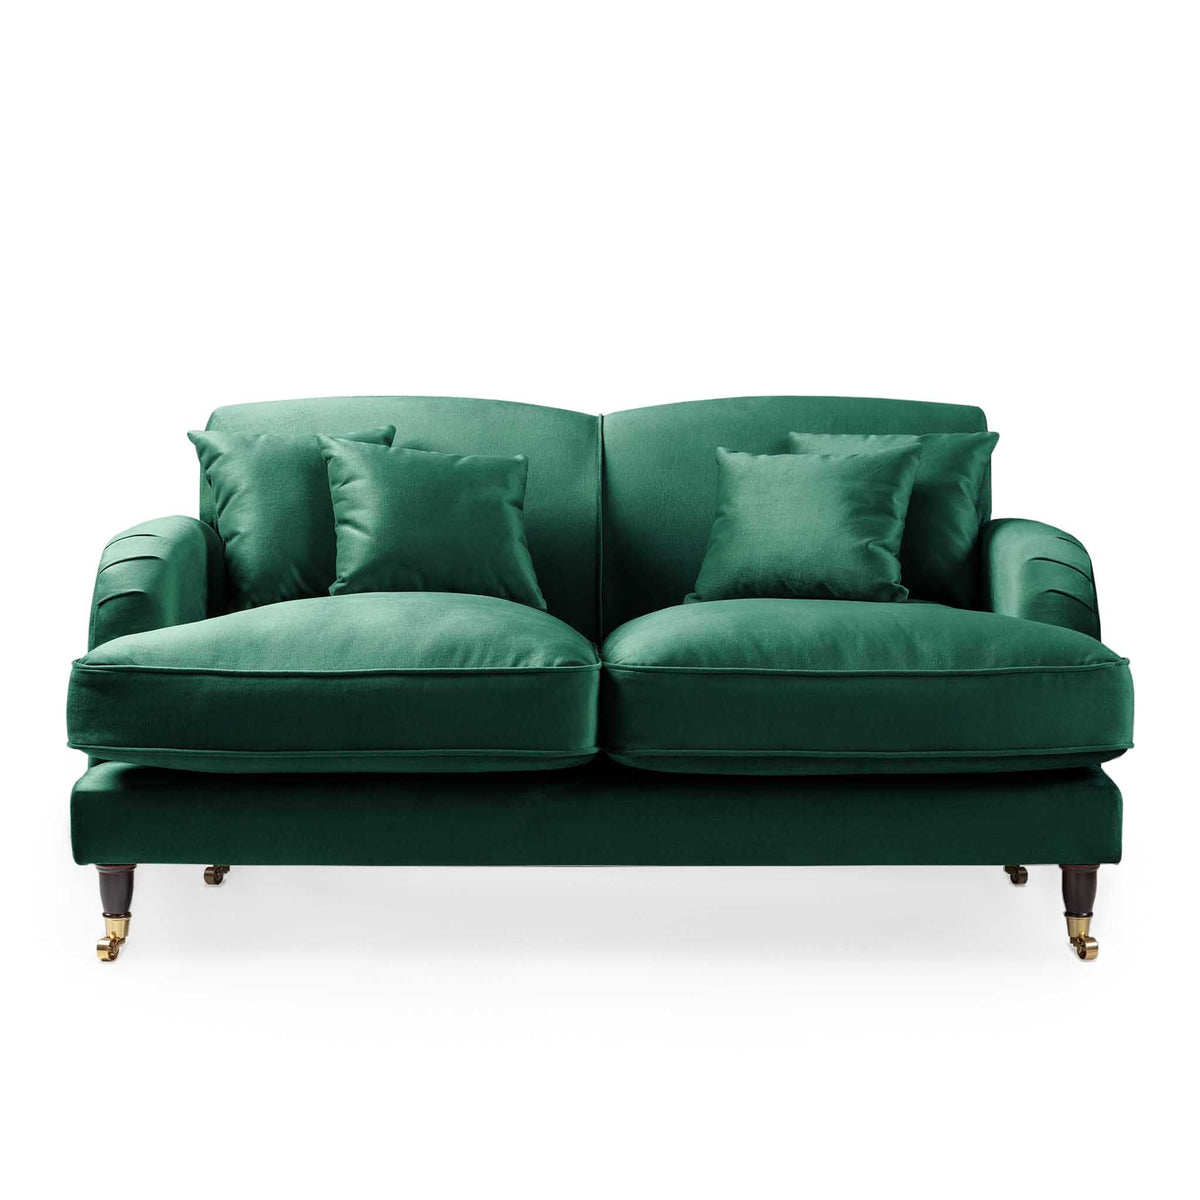 Piper Jasper 2 Seater Sofa from Roseland Furniture